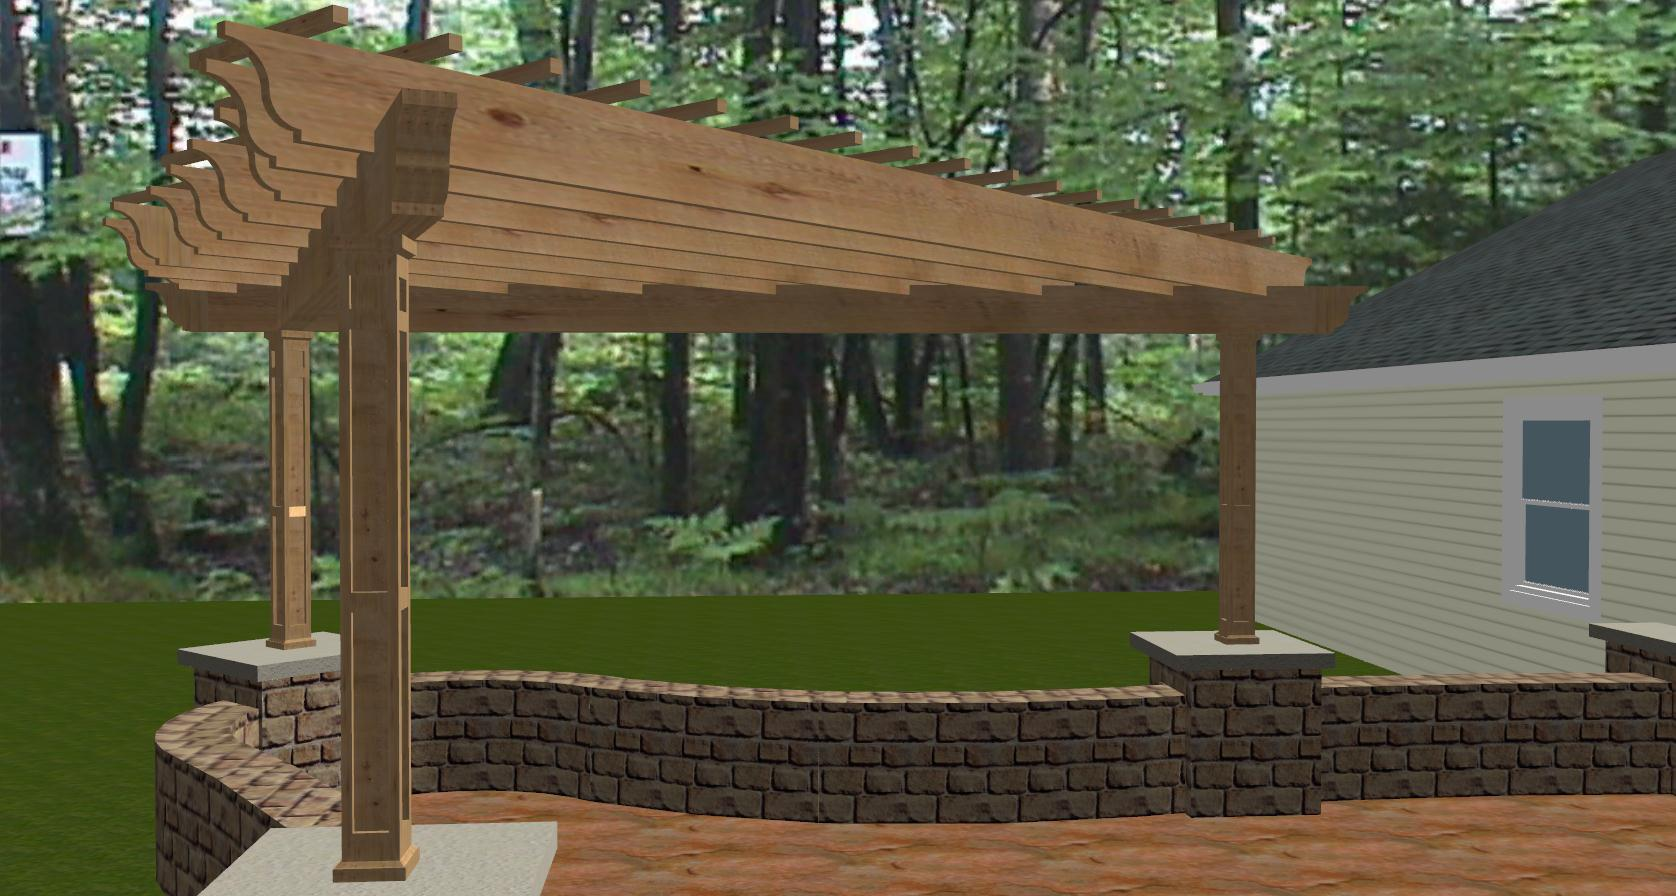 Wood Pergola Plans with stone veneer panels partition